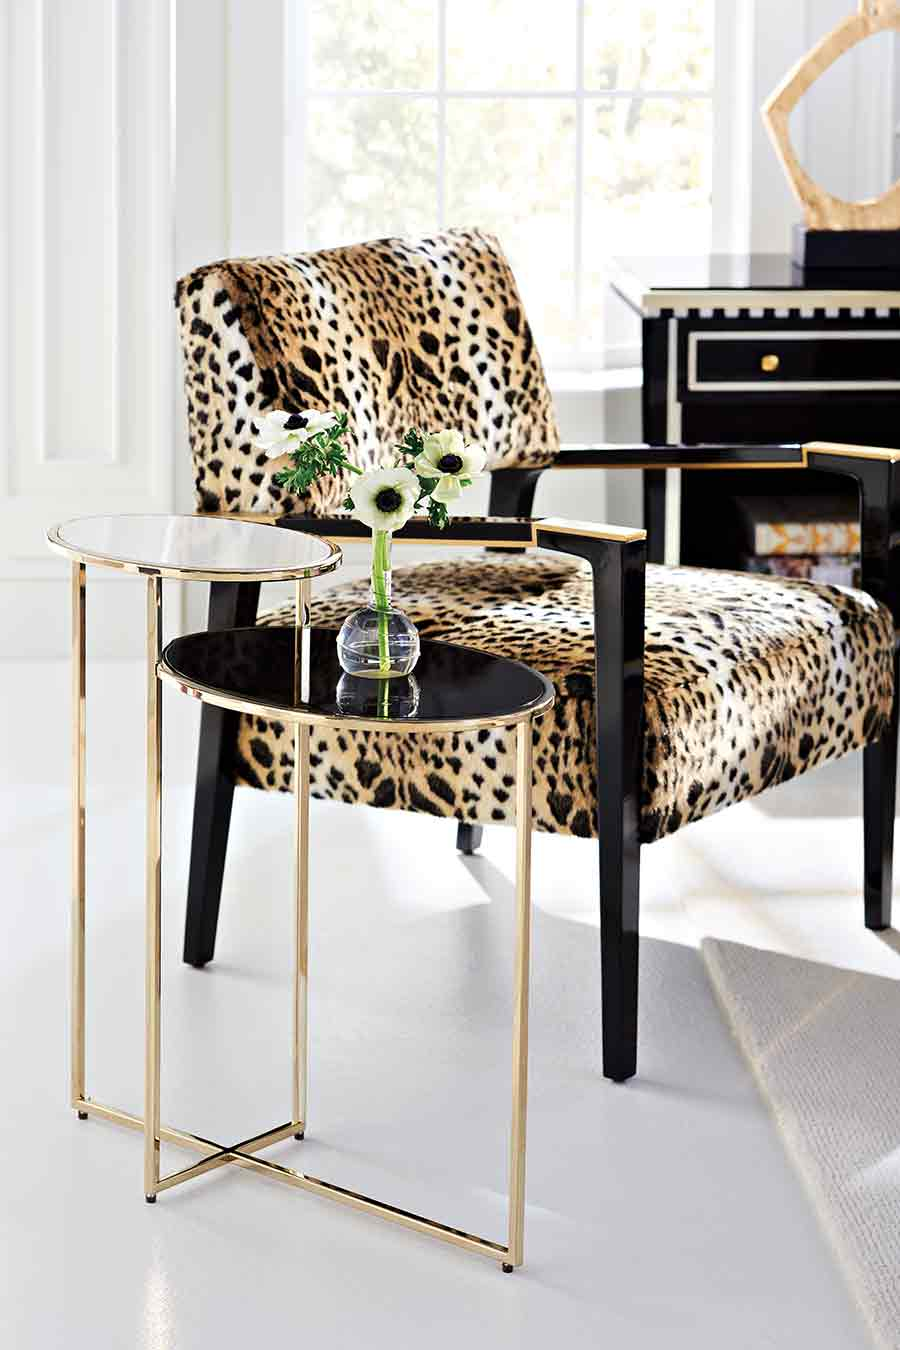 The Liaison Side Table | Contemporary Luxury Exclusive Designer Modern High End Furniture | Sandton Johannesburg